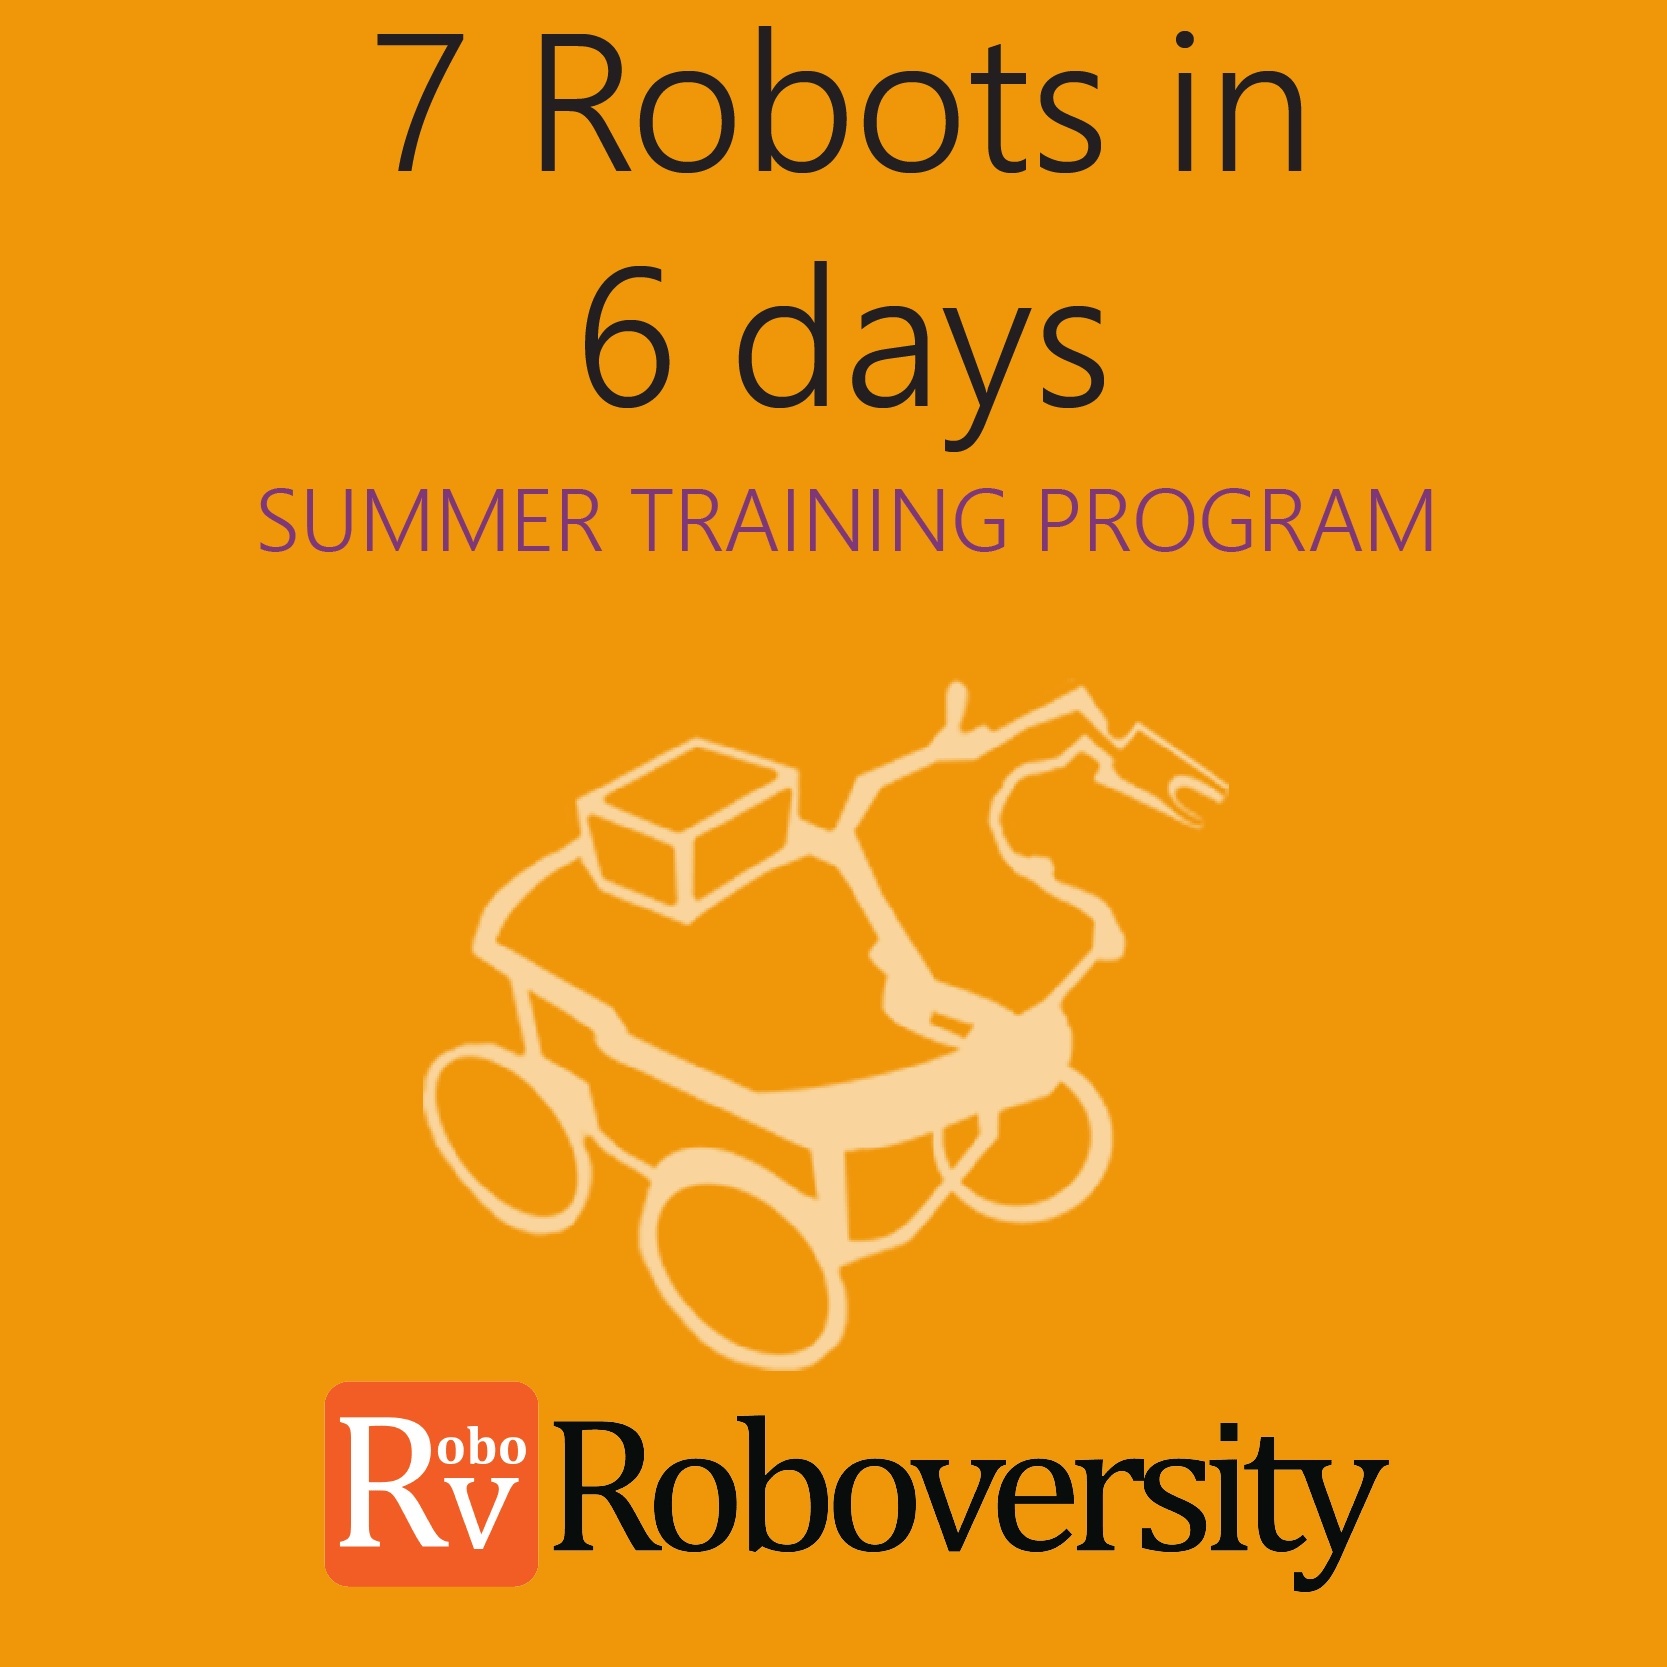 Summer Training Program on 7 Robots in 6 Days  at Skyfi Labs Center Workshop